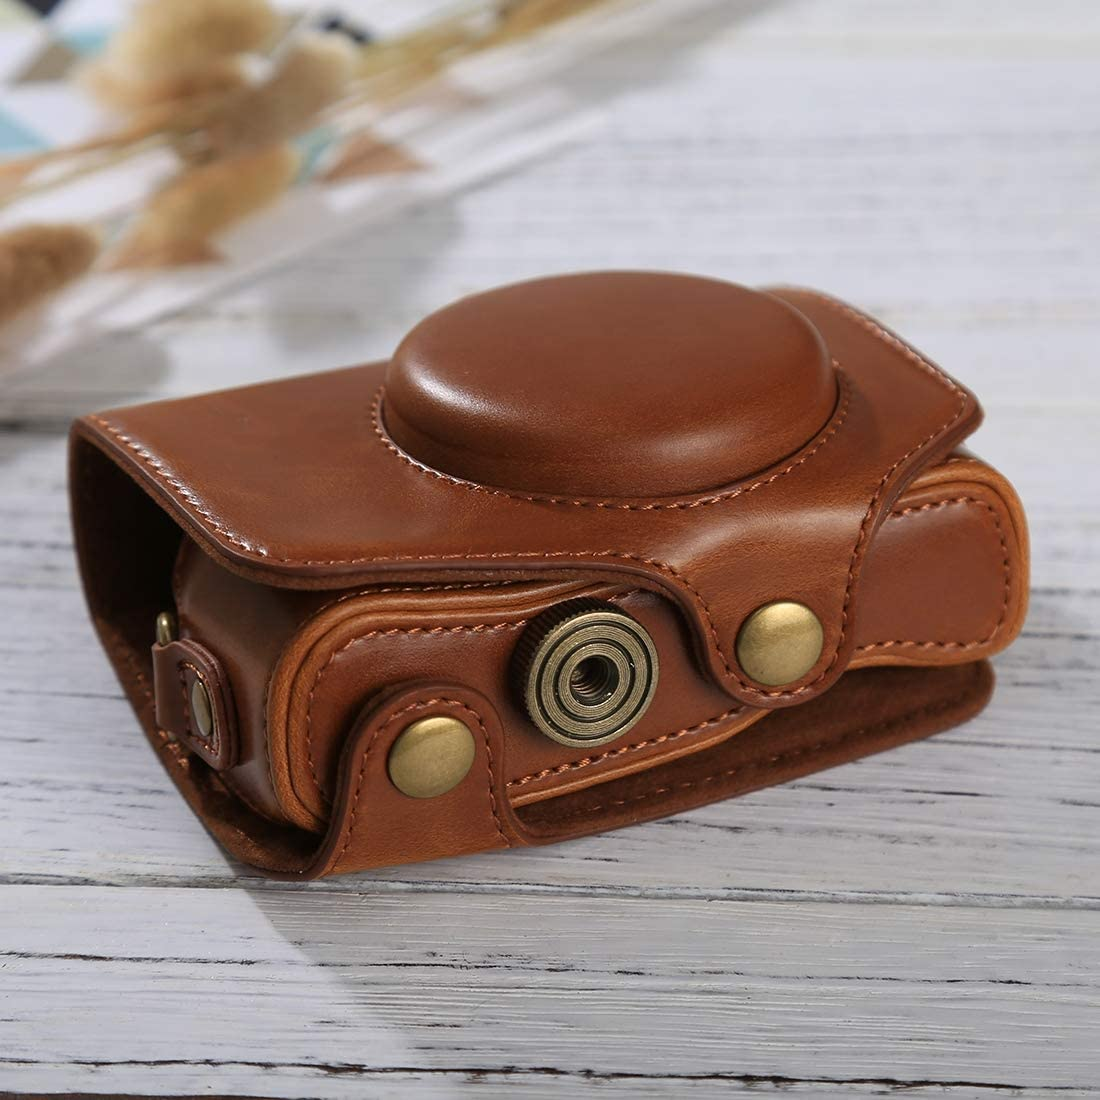 YANTAIANJANE Camera Accessories Full Body Camera PU Leather Case Bag with Strap for Canon PowerShot SX730 HS SX720 HS Black Color : Brown